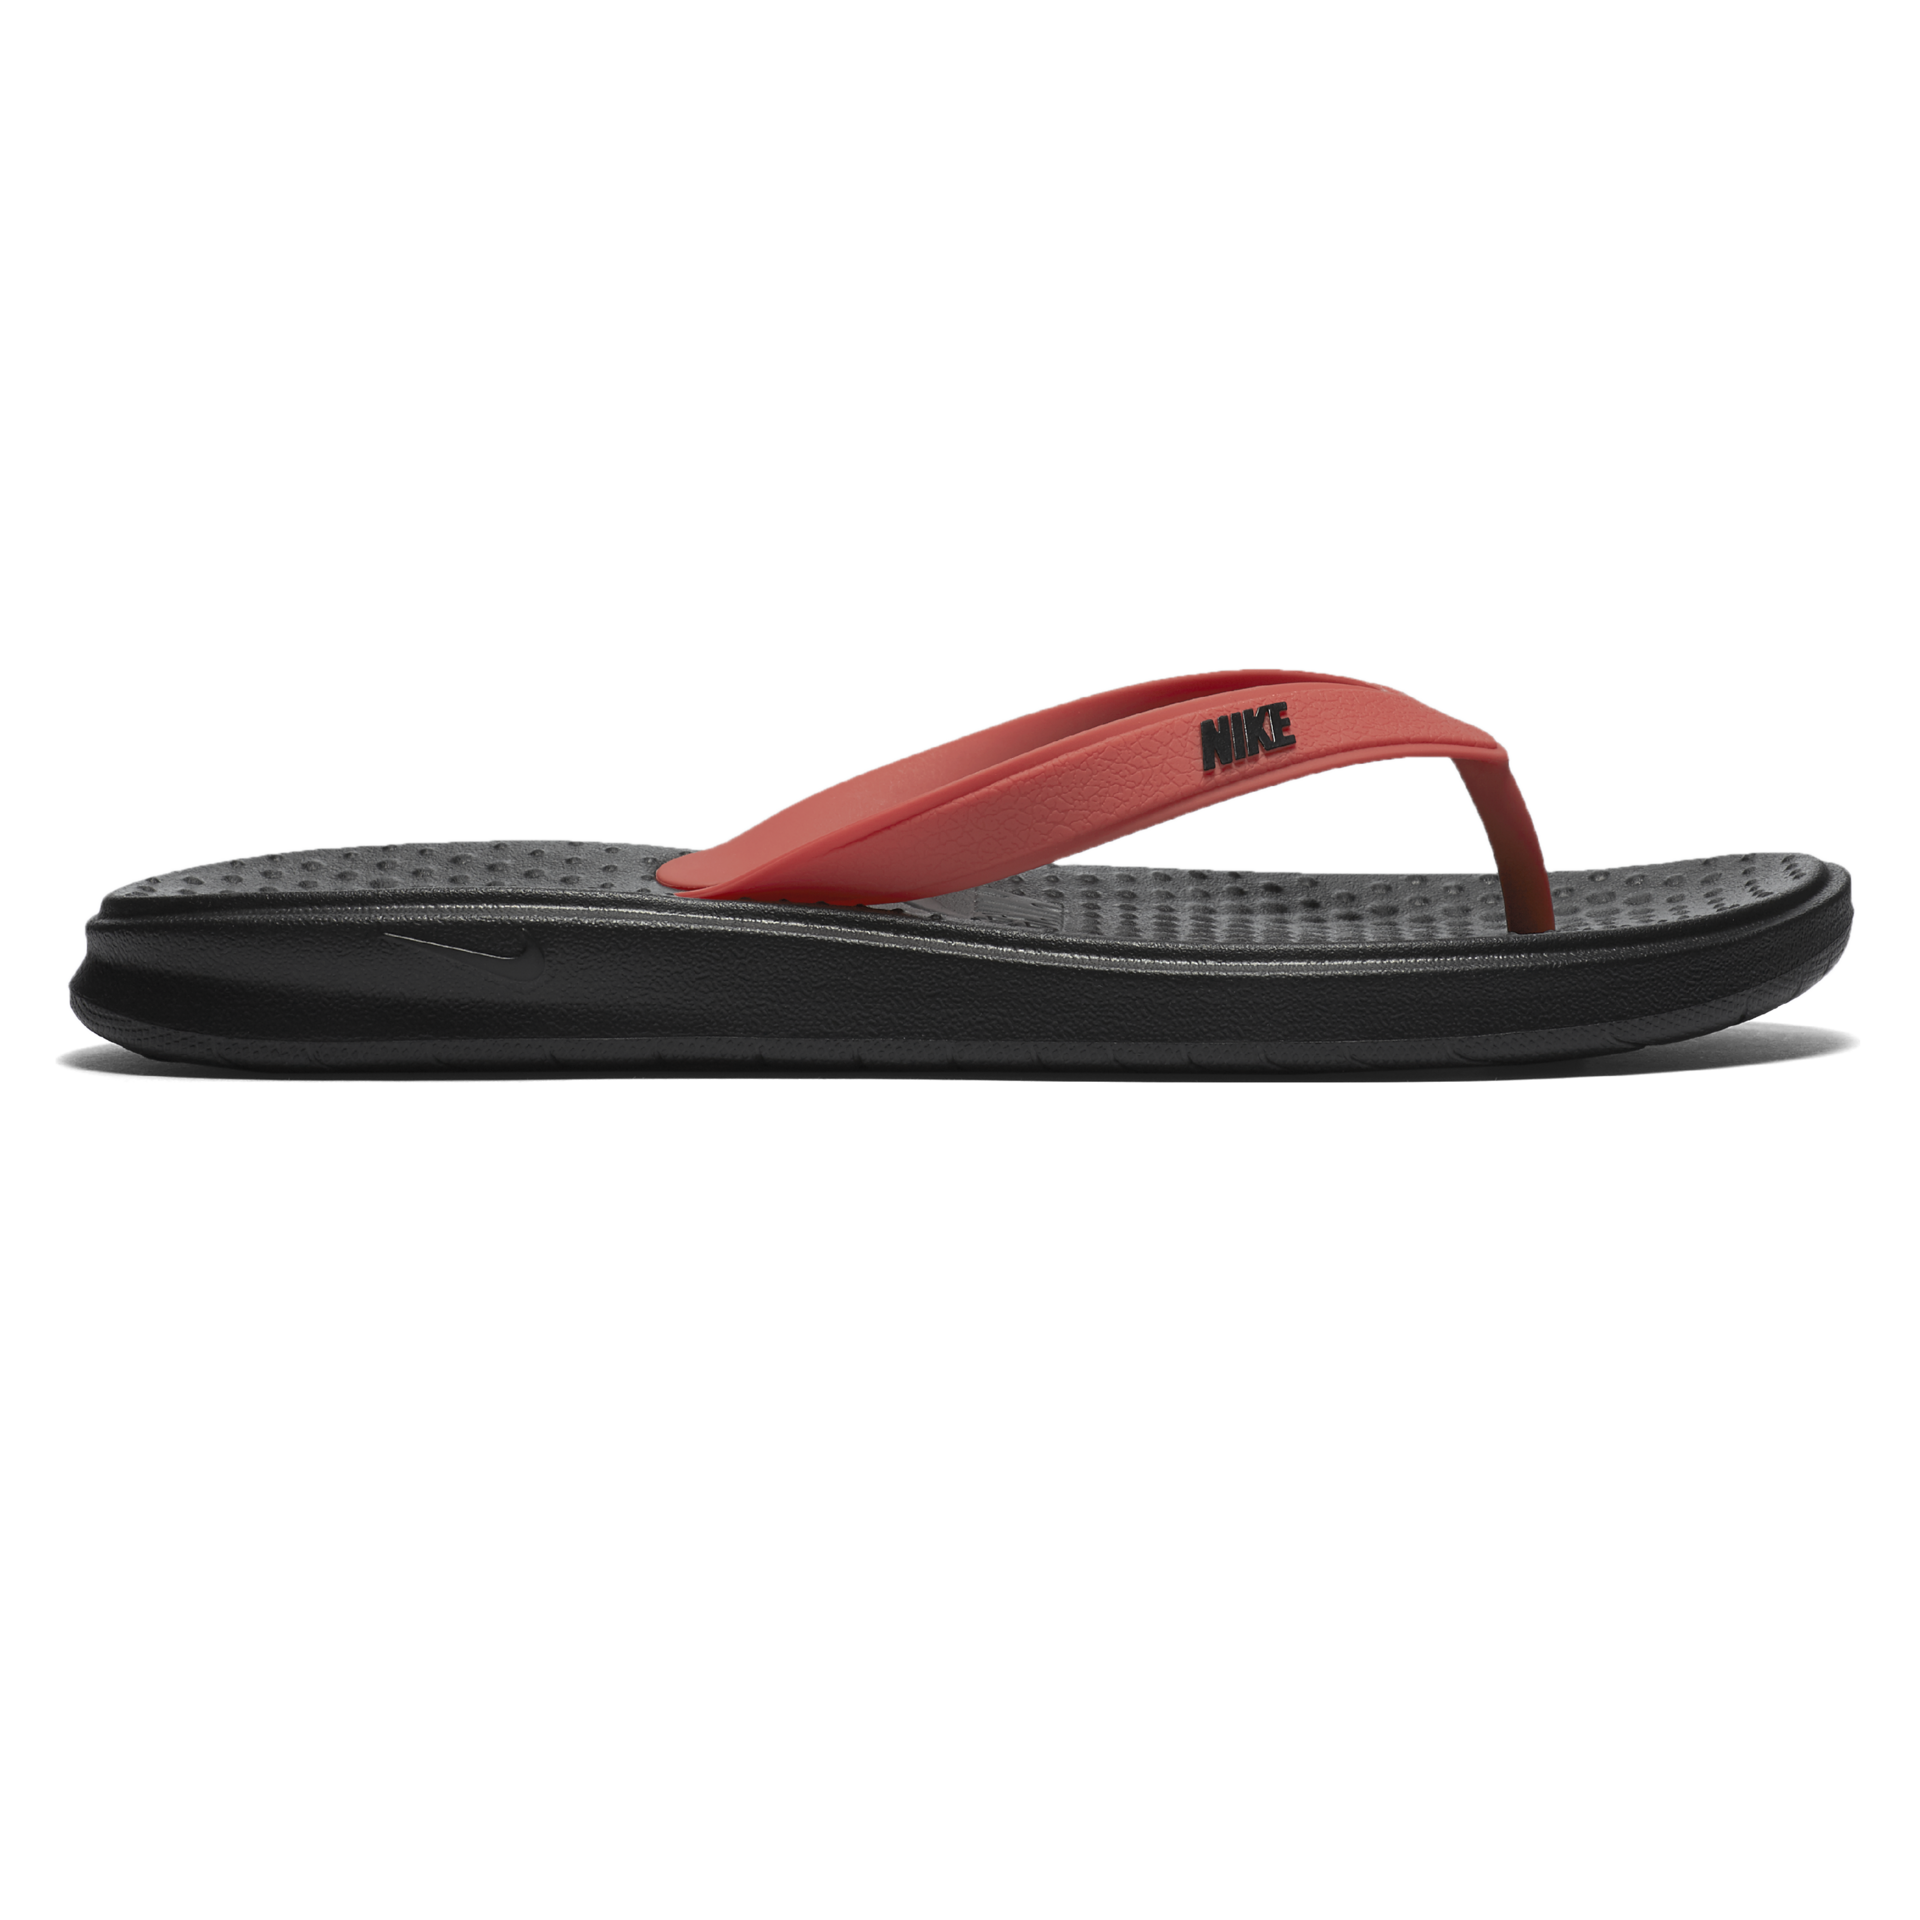 upcitemdb comforter mens image for hei comfort sandal com sharpen sandals s product upc wid men thong nike op